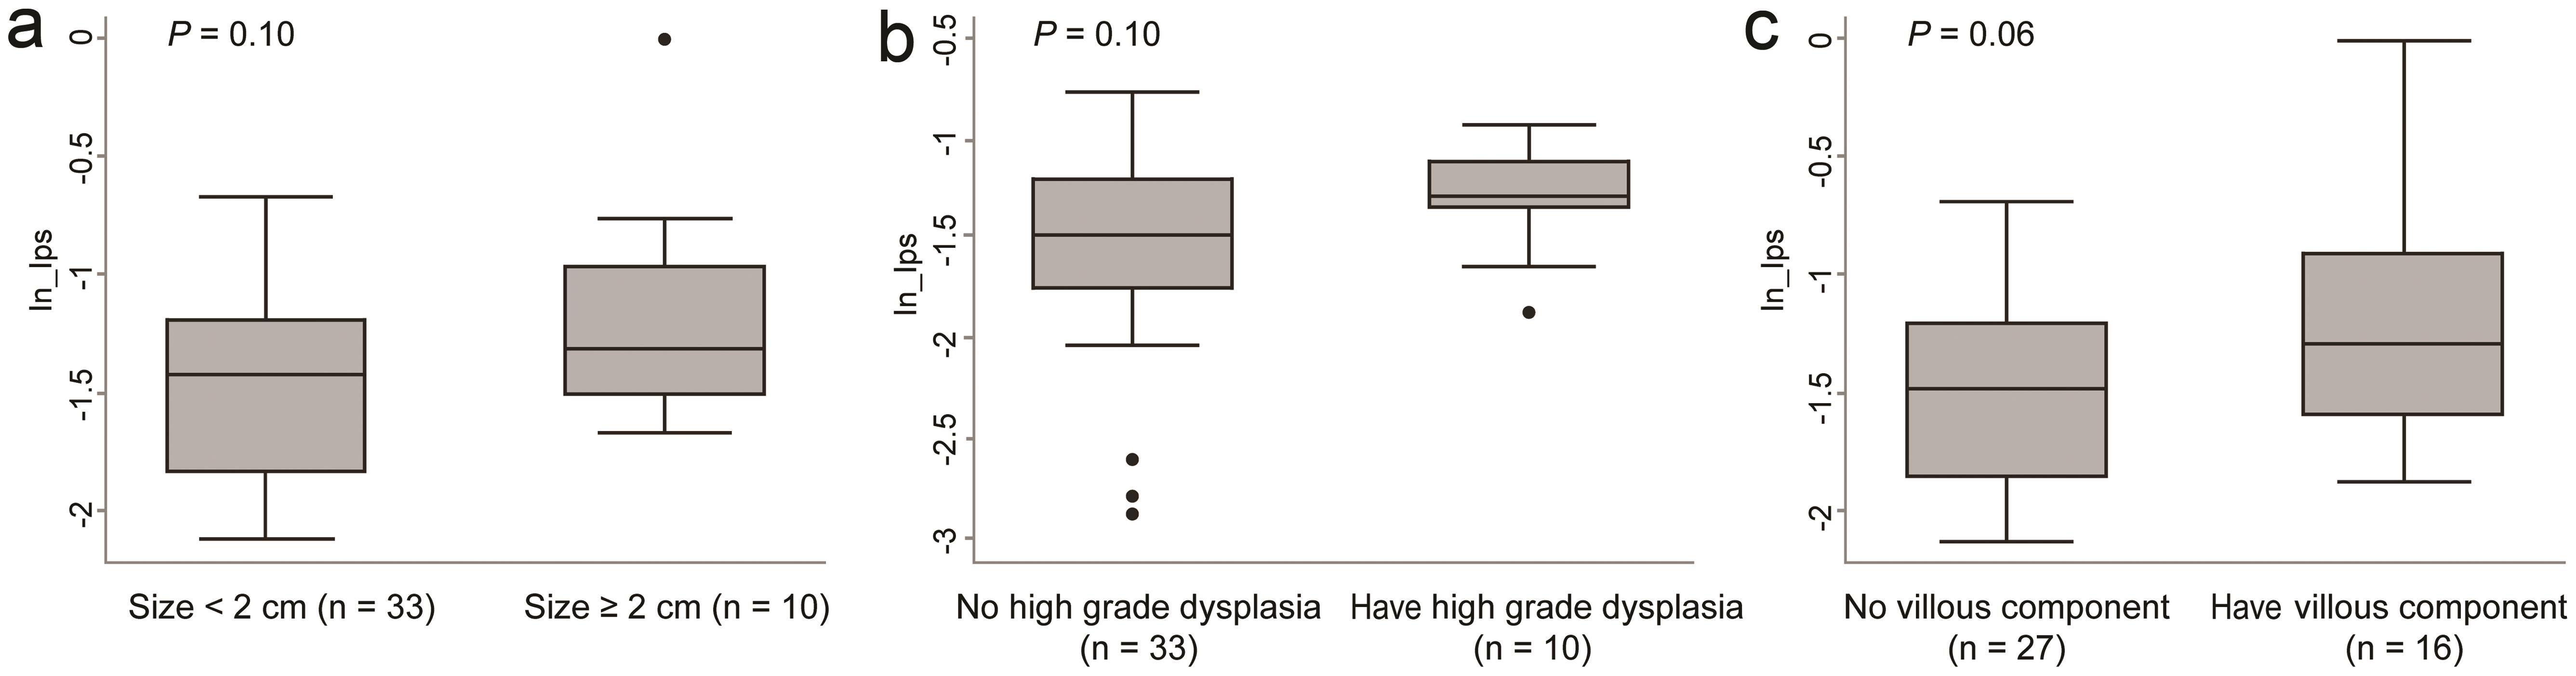 Box-plot shows the difference in transformed LPS values based on the characteristics of the adenoma.